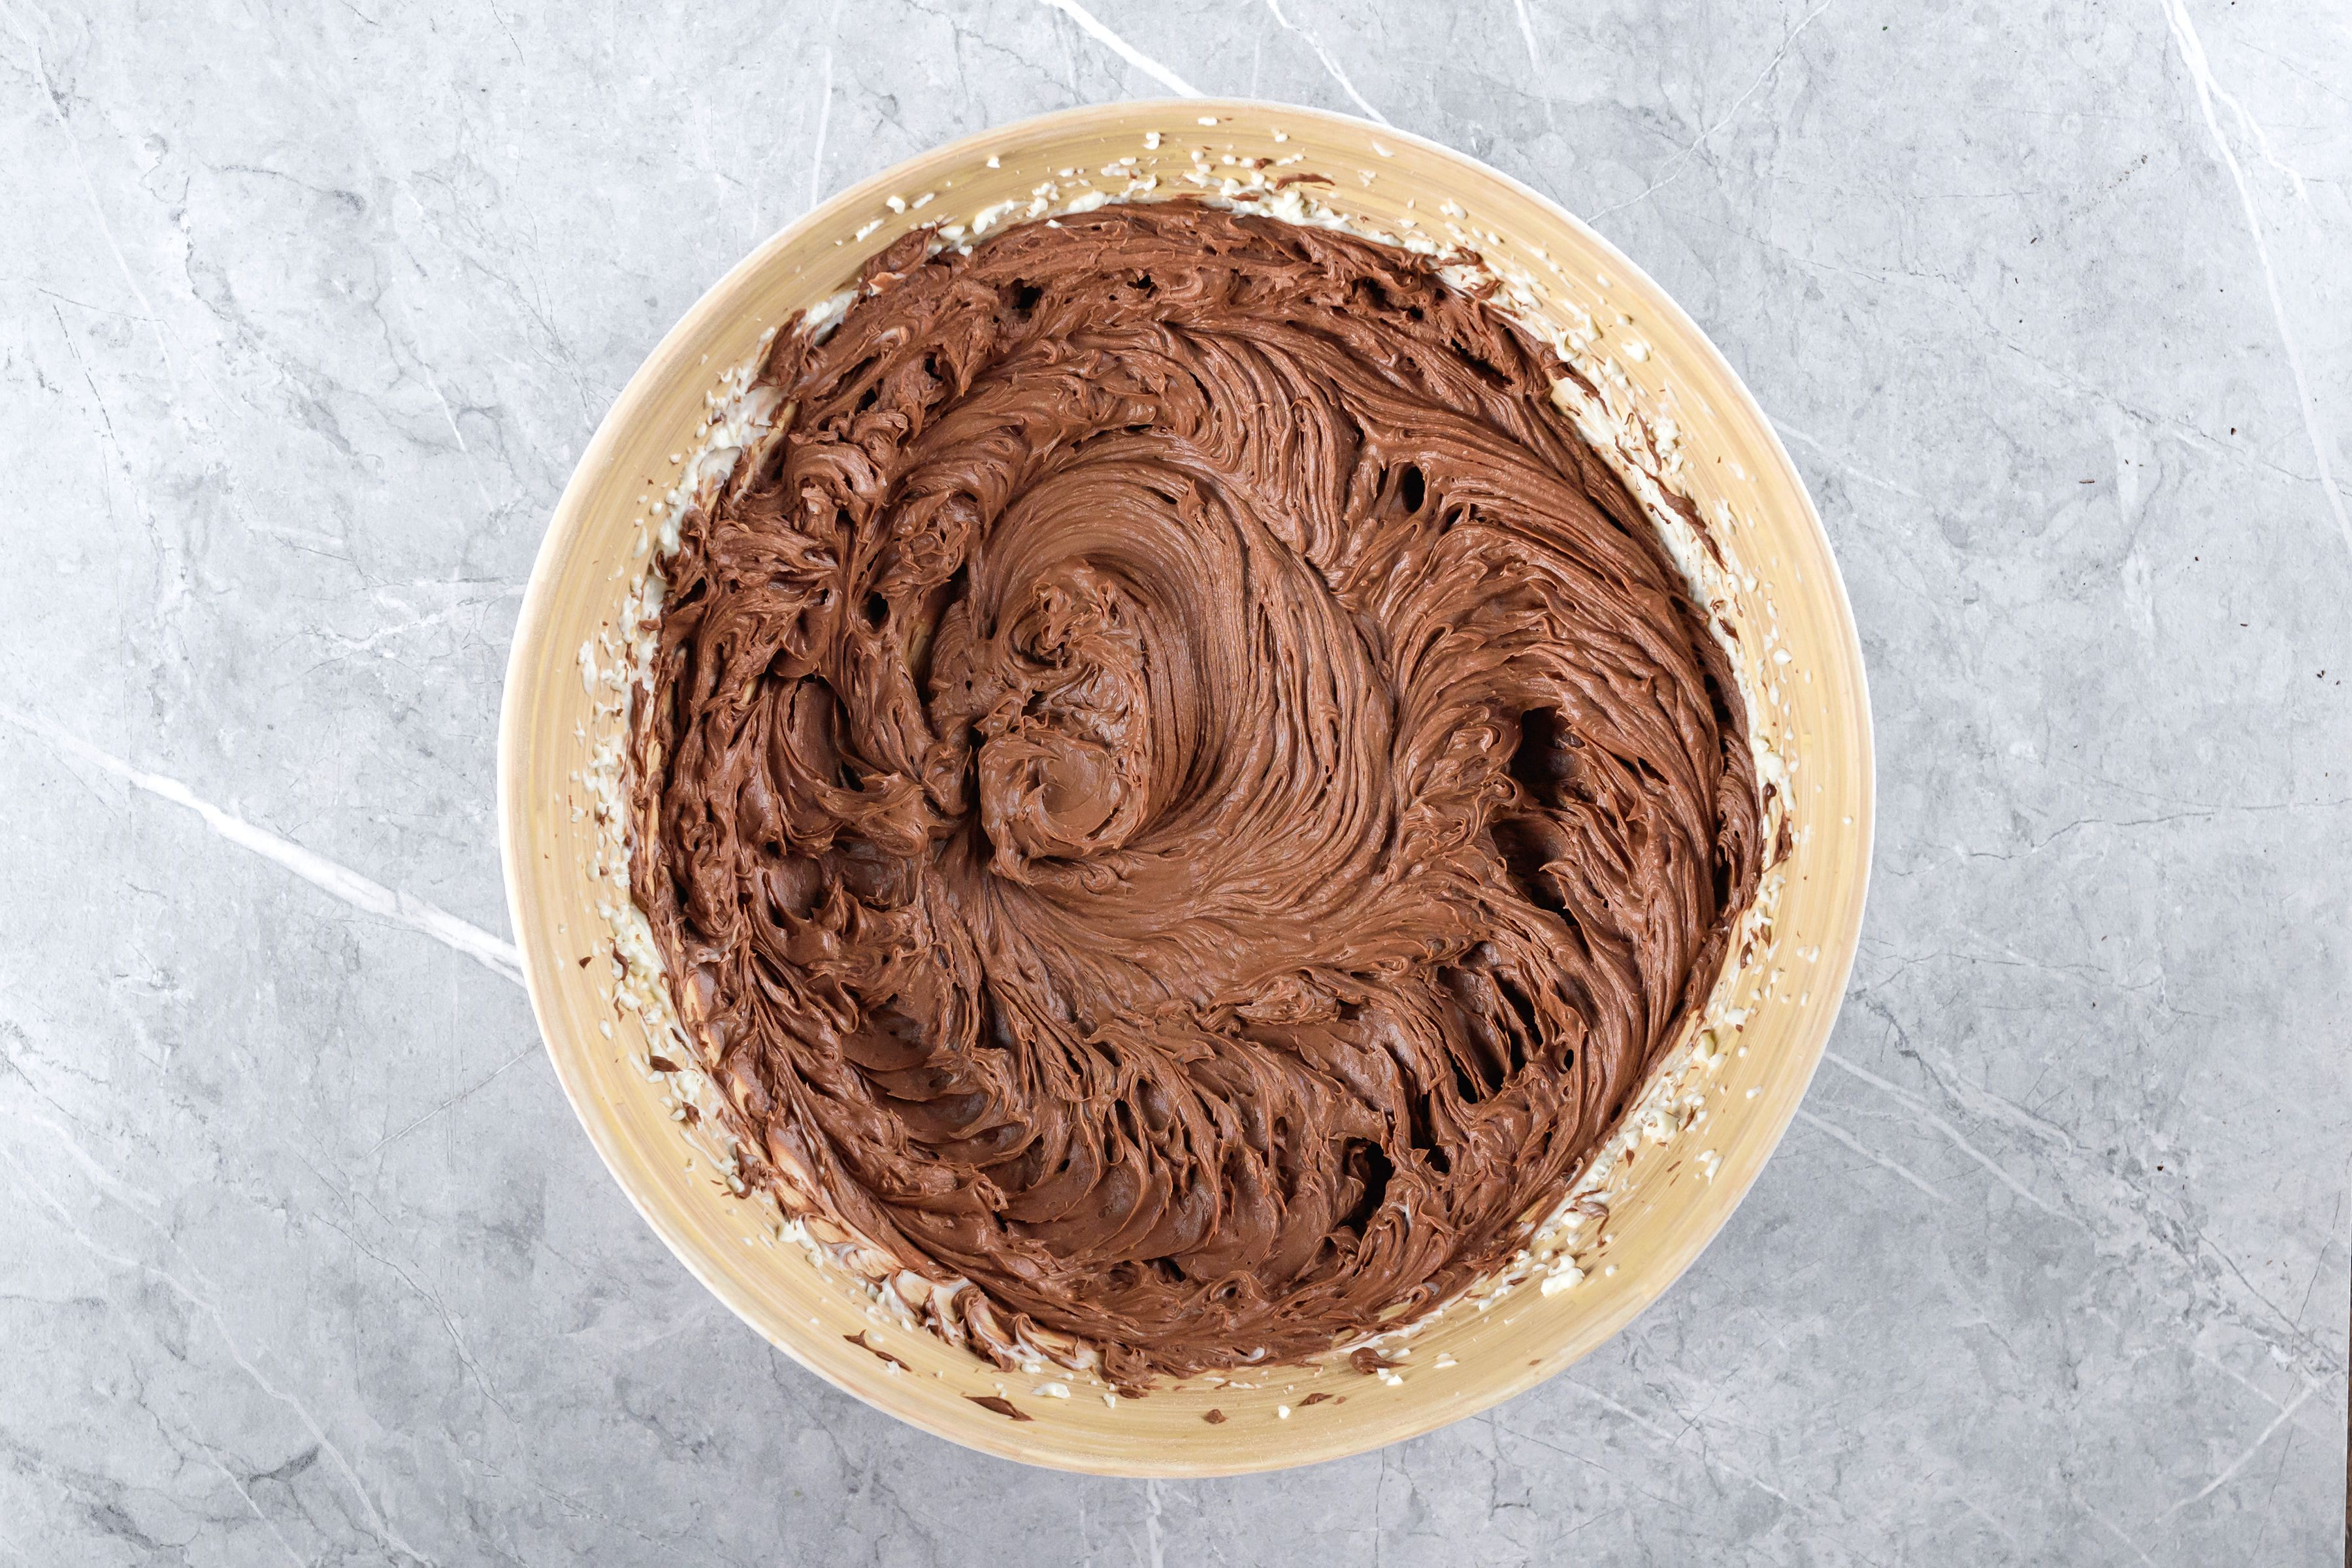 Blend in melted chocolate